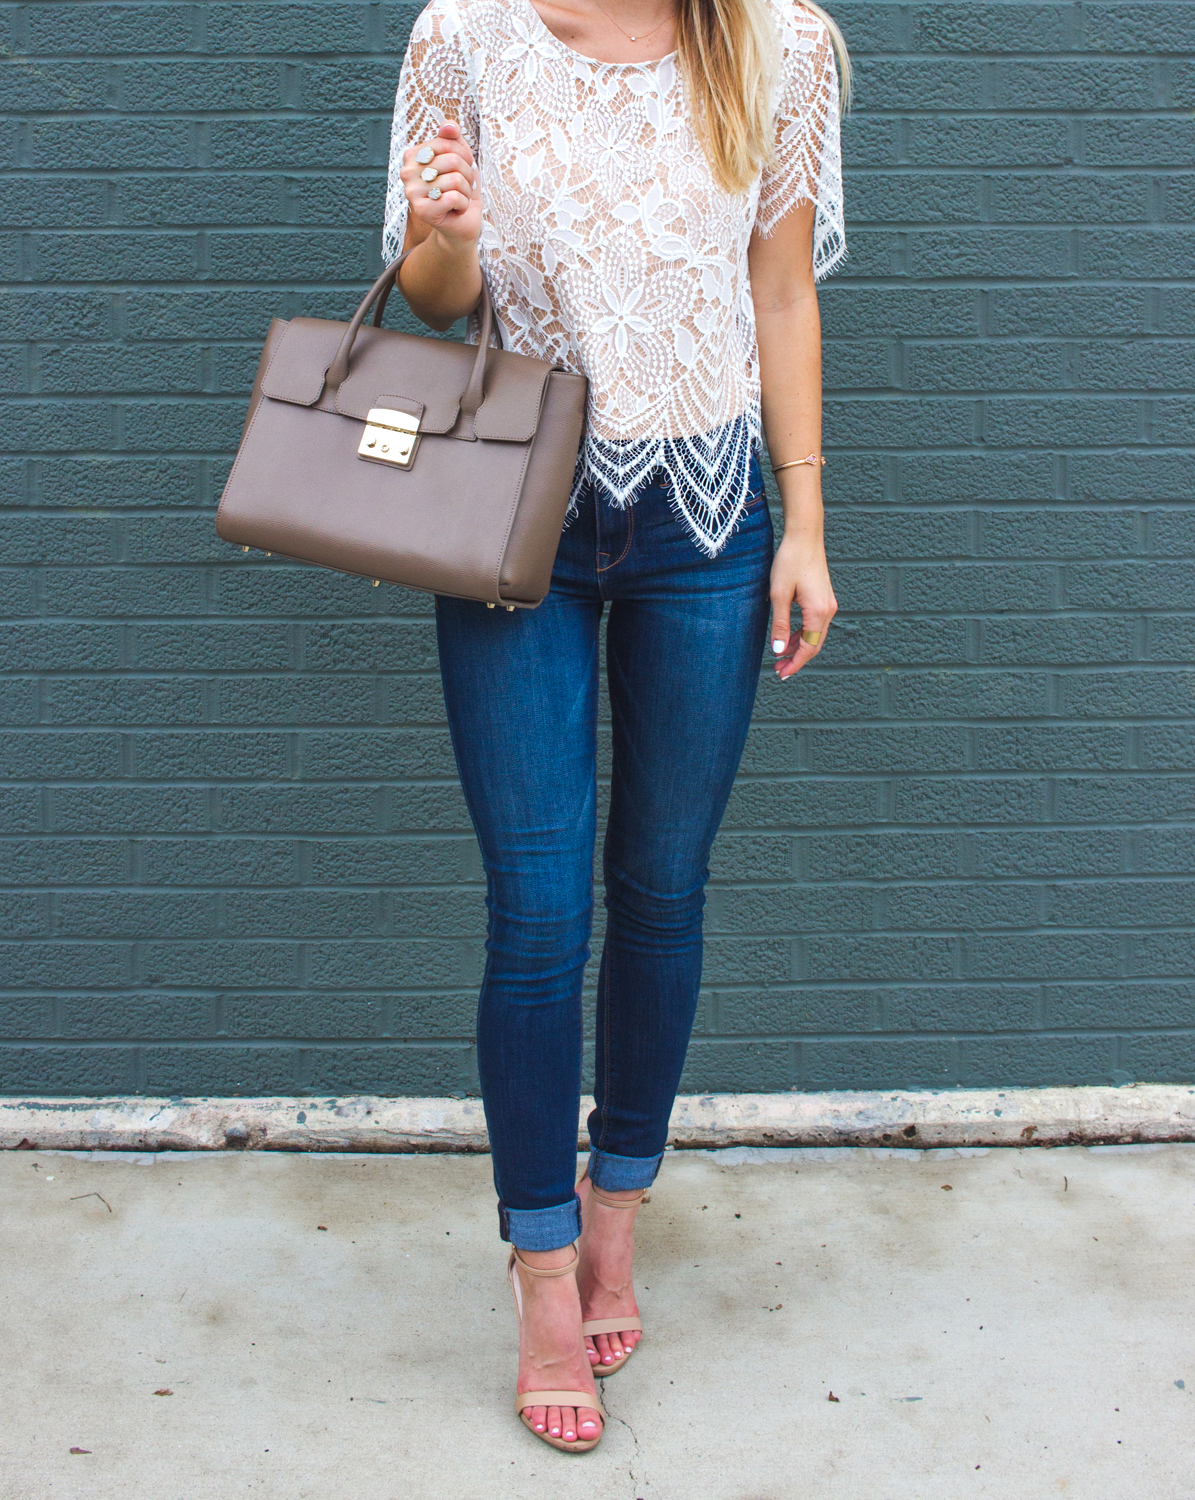 livvyland-blog-olivia-watson-date-night-express-skinny-jeans-lace-overlay-top-3